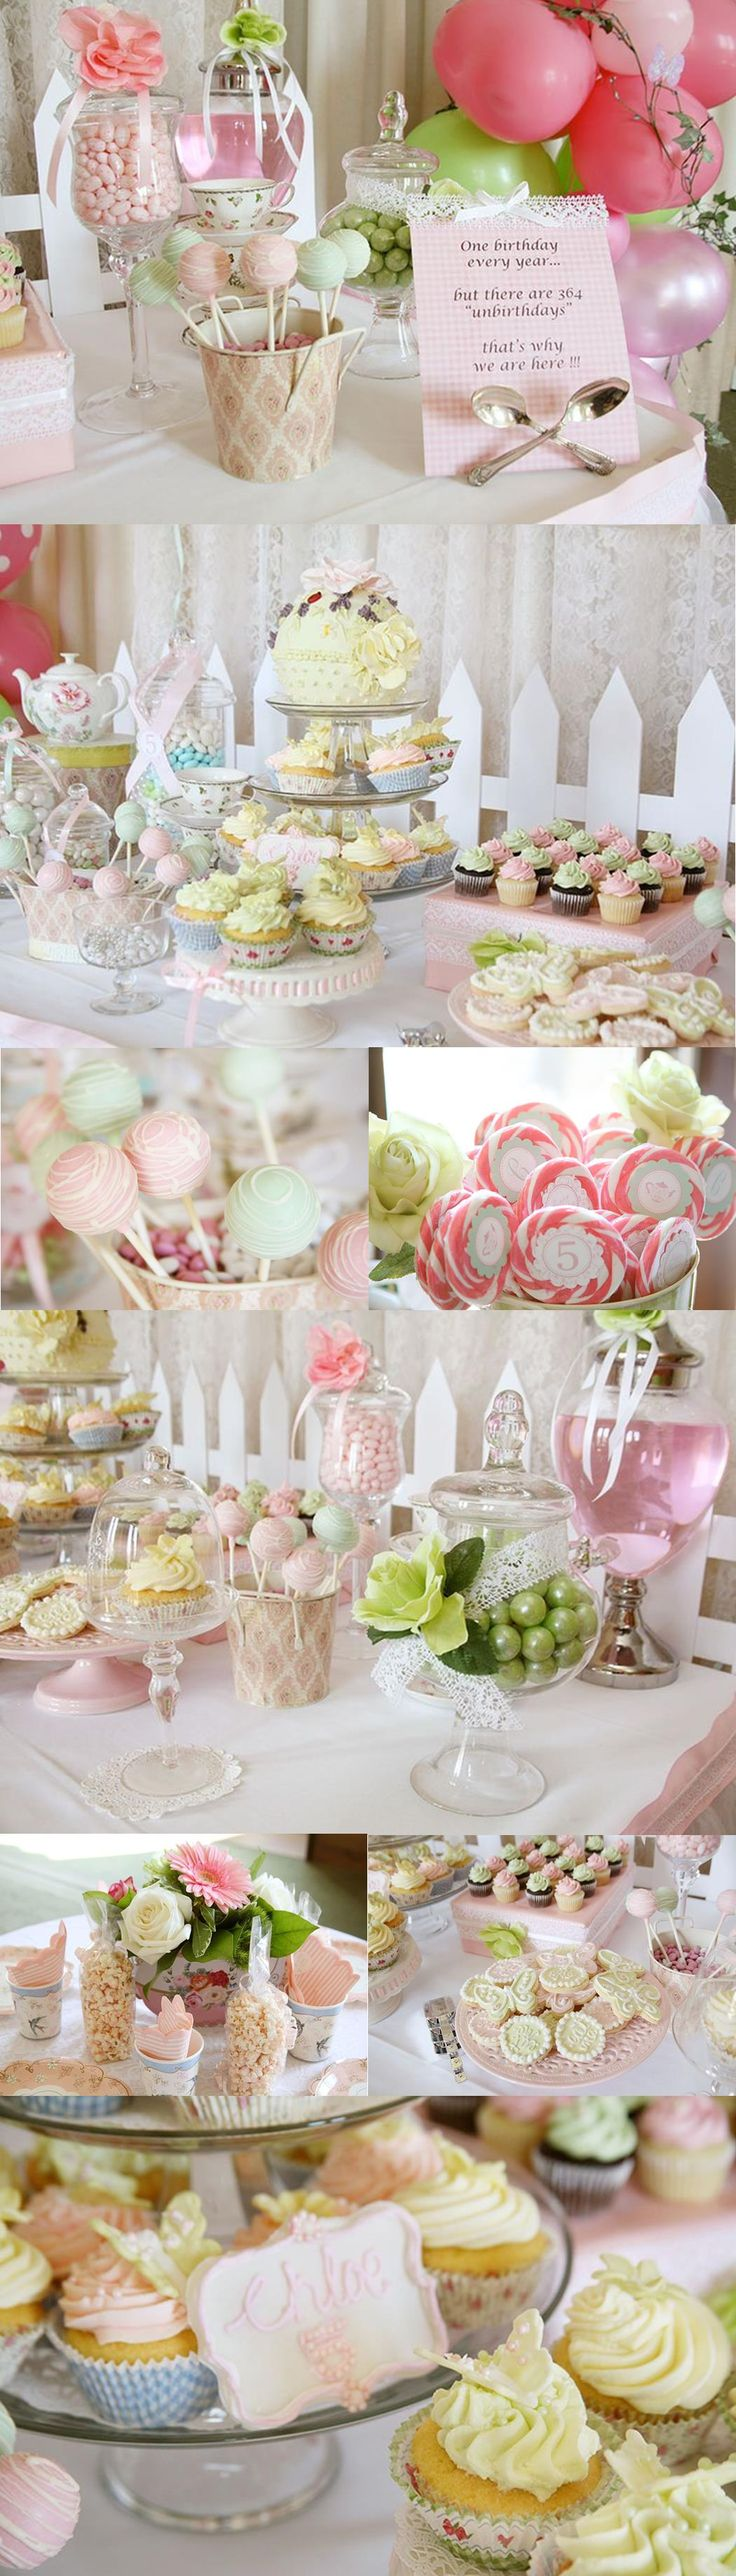 Tea party ideas ....